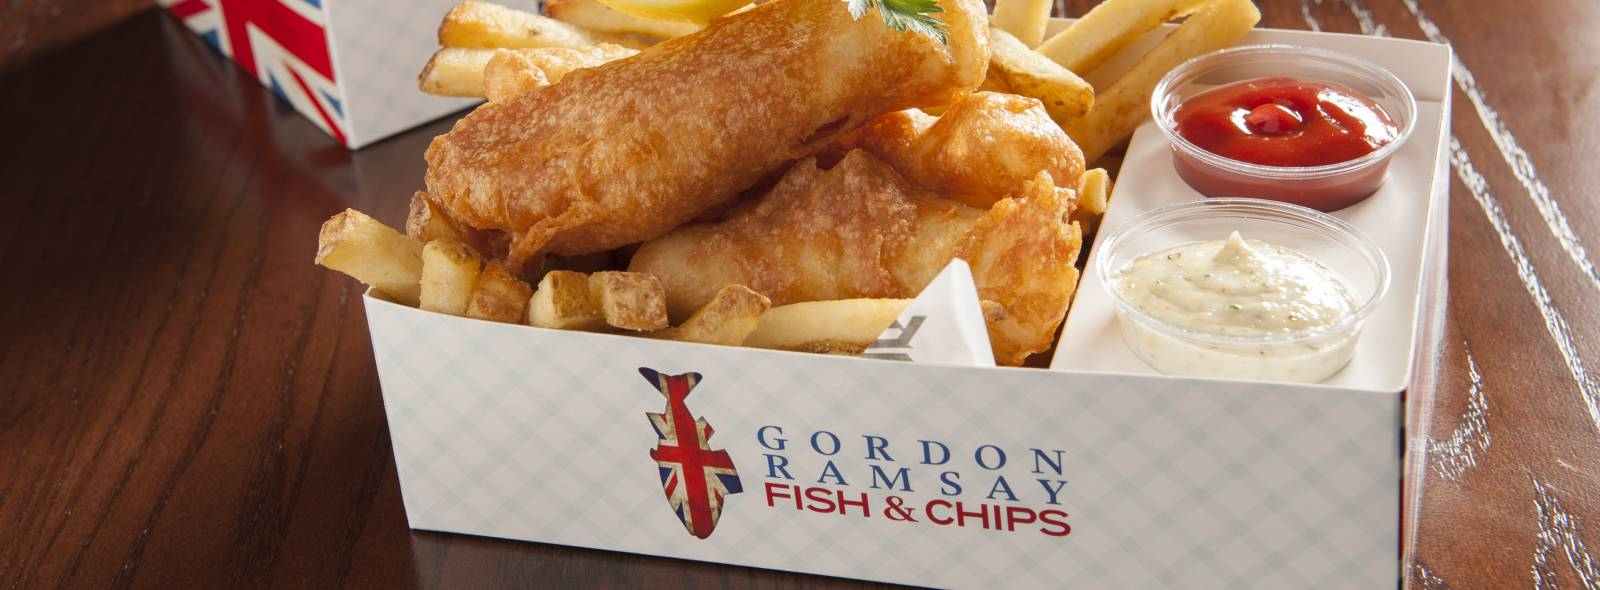 Where can i get fish and chips near me for Best place for fish and chips near me